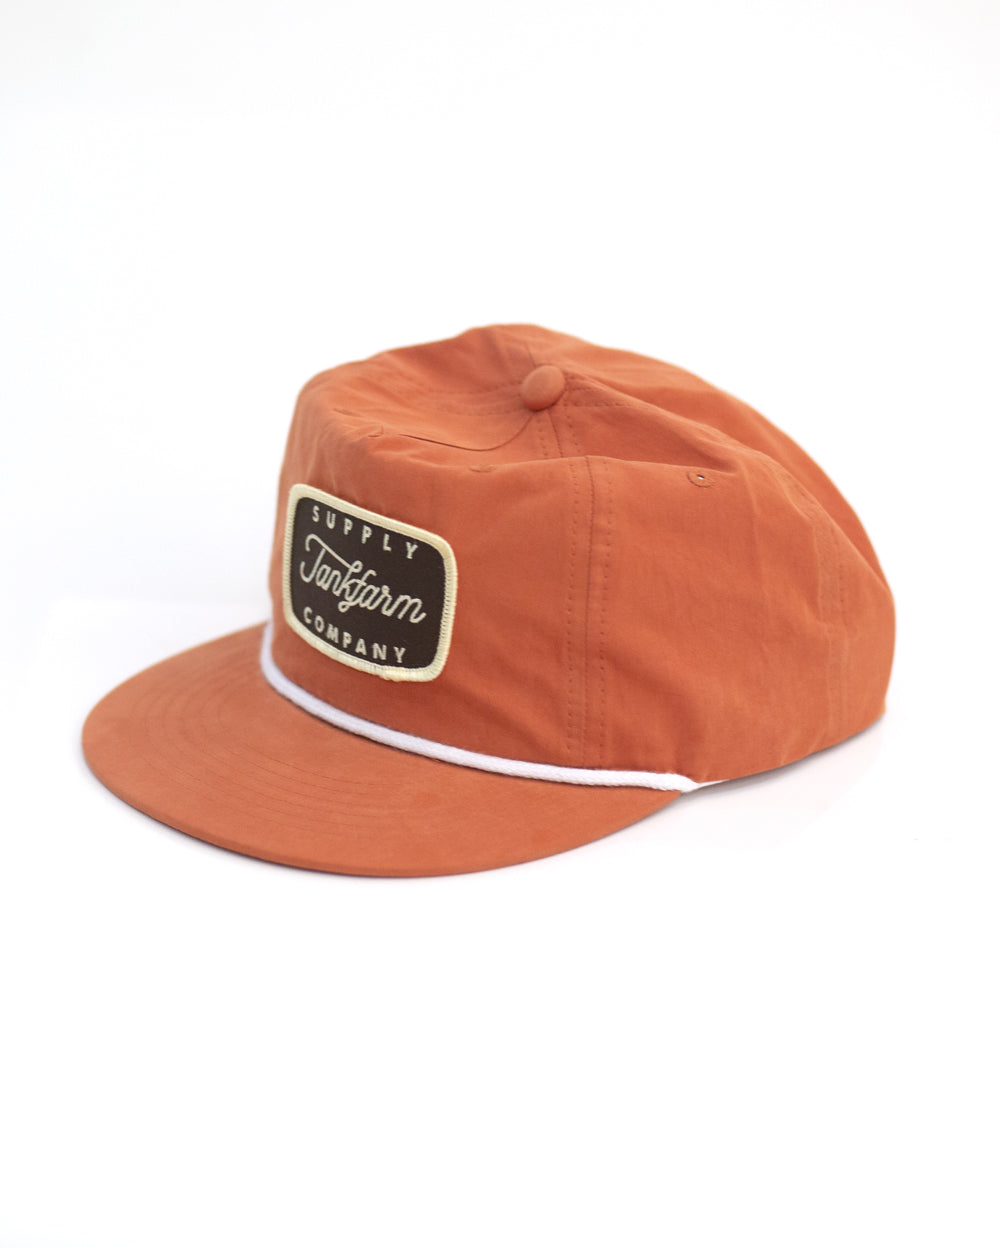 SUPPLY SHIELD SNAPBACK- ORANGE - Tankfarm & Co.